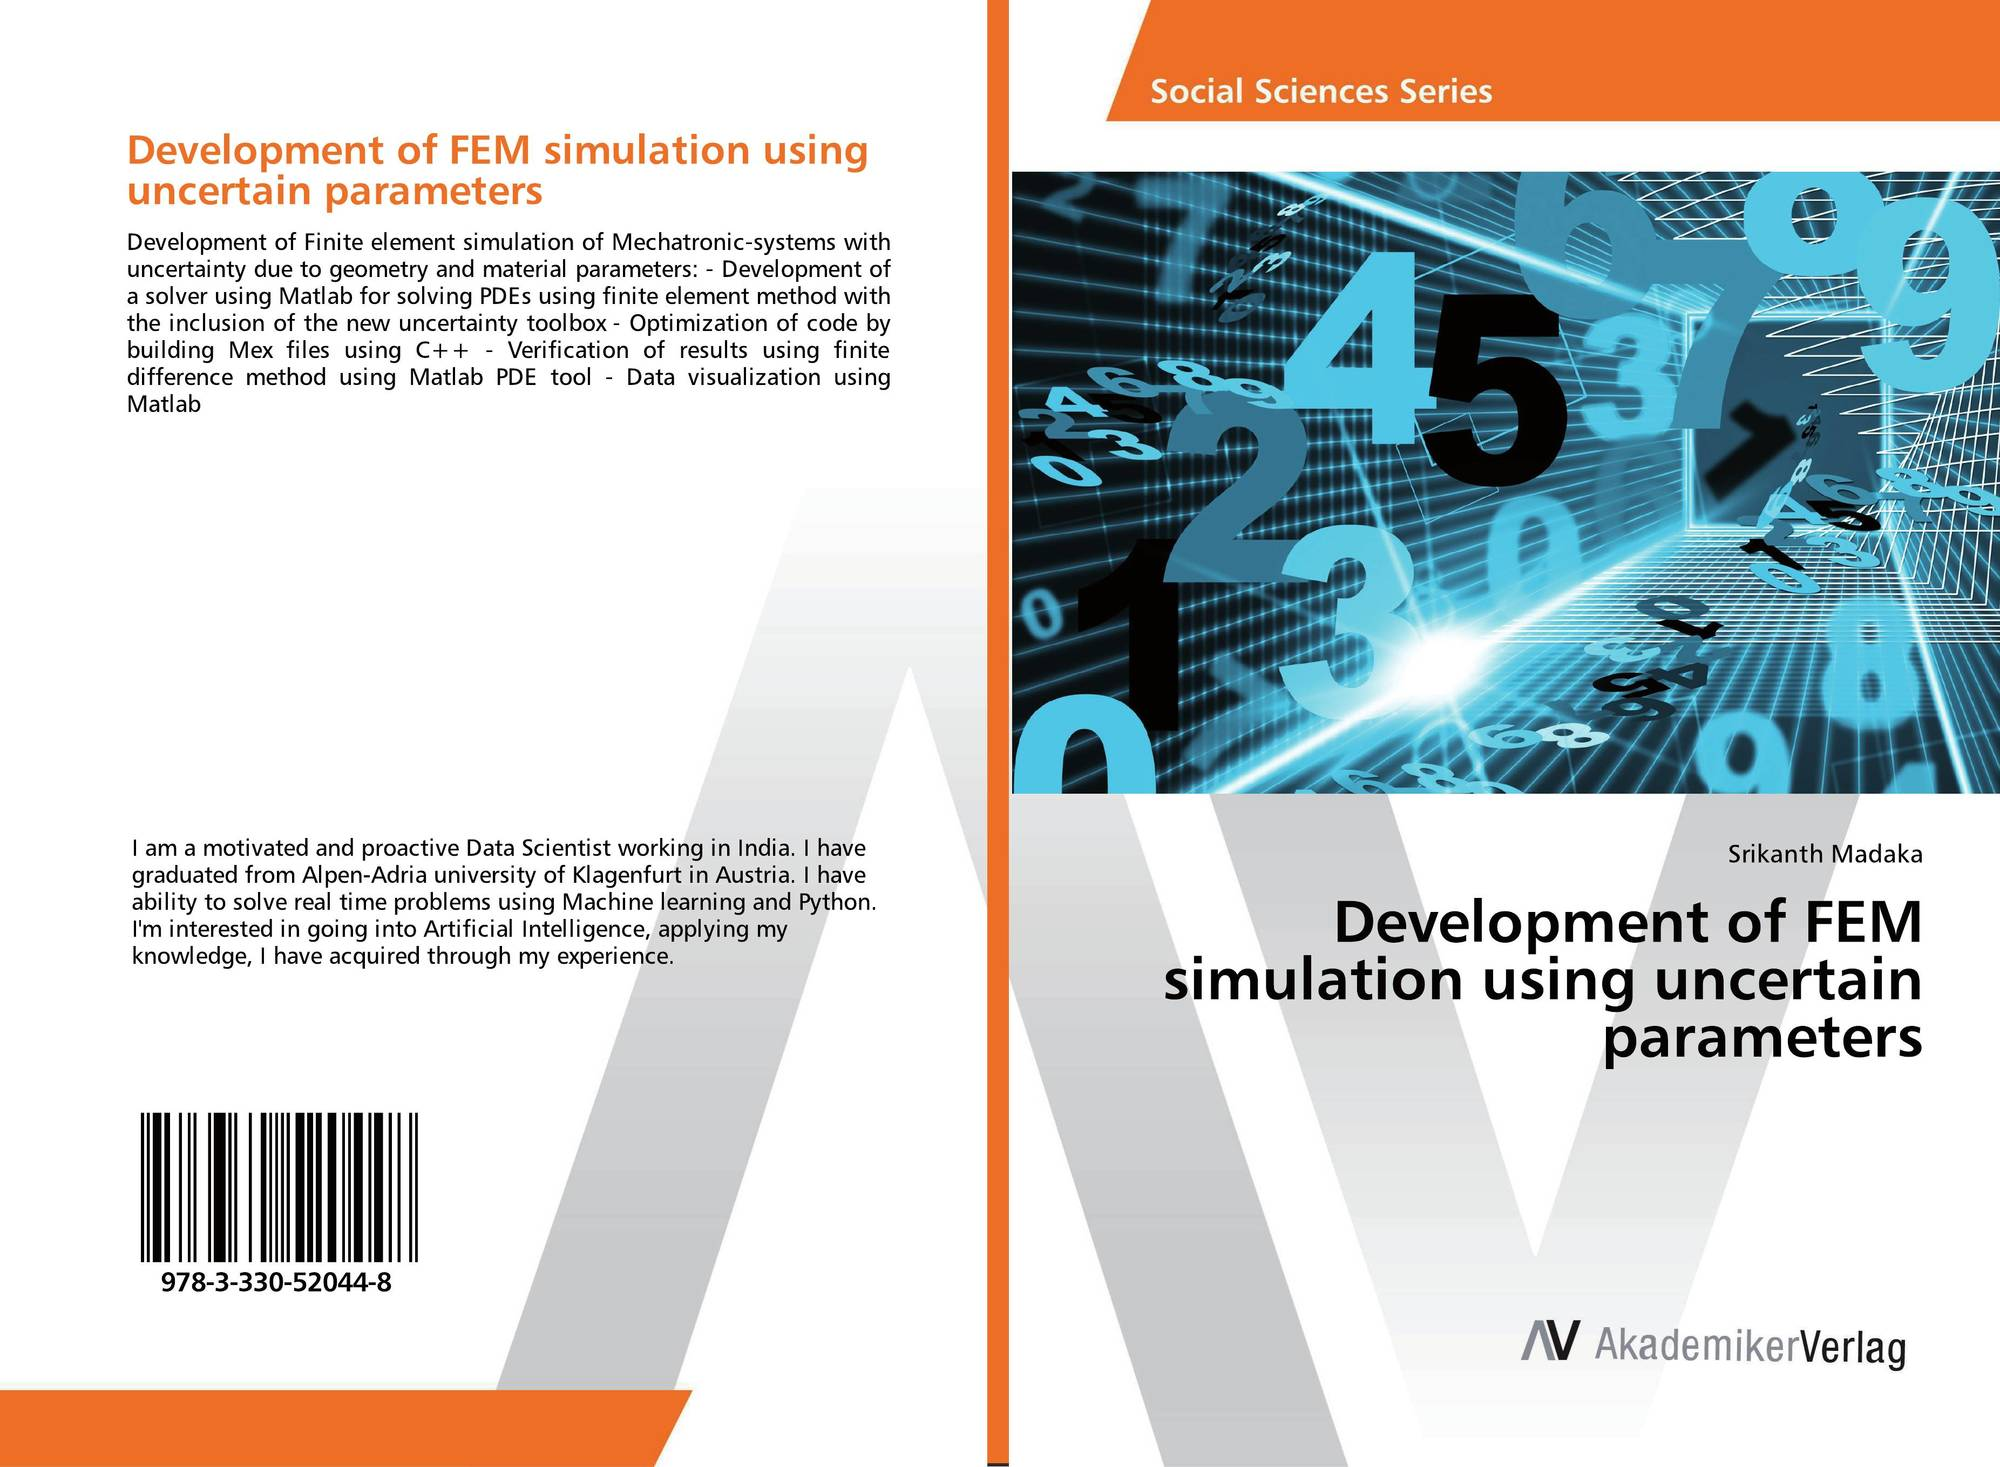 Development of FEM simulation using uncertain parameters, 978-3-330